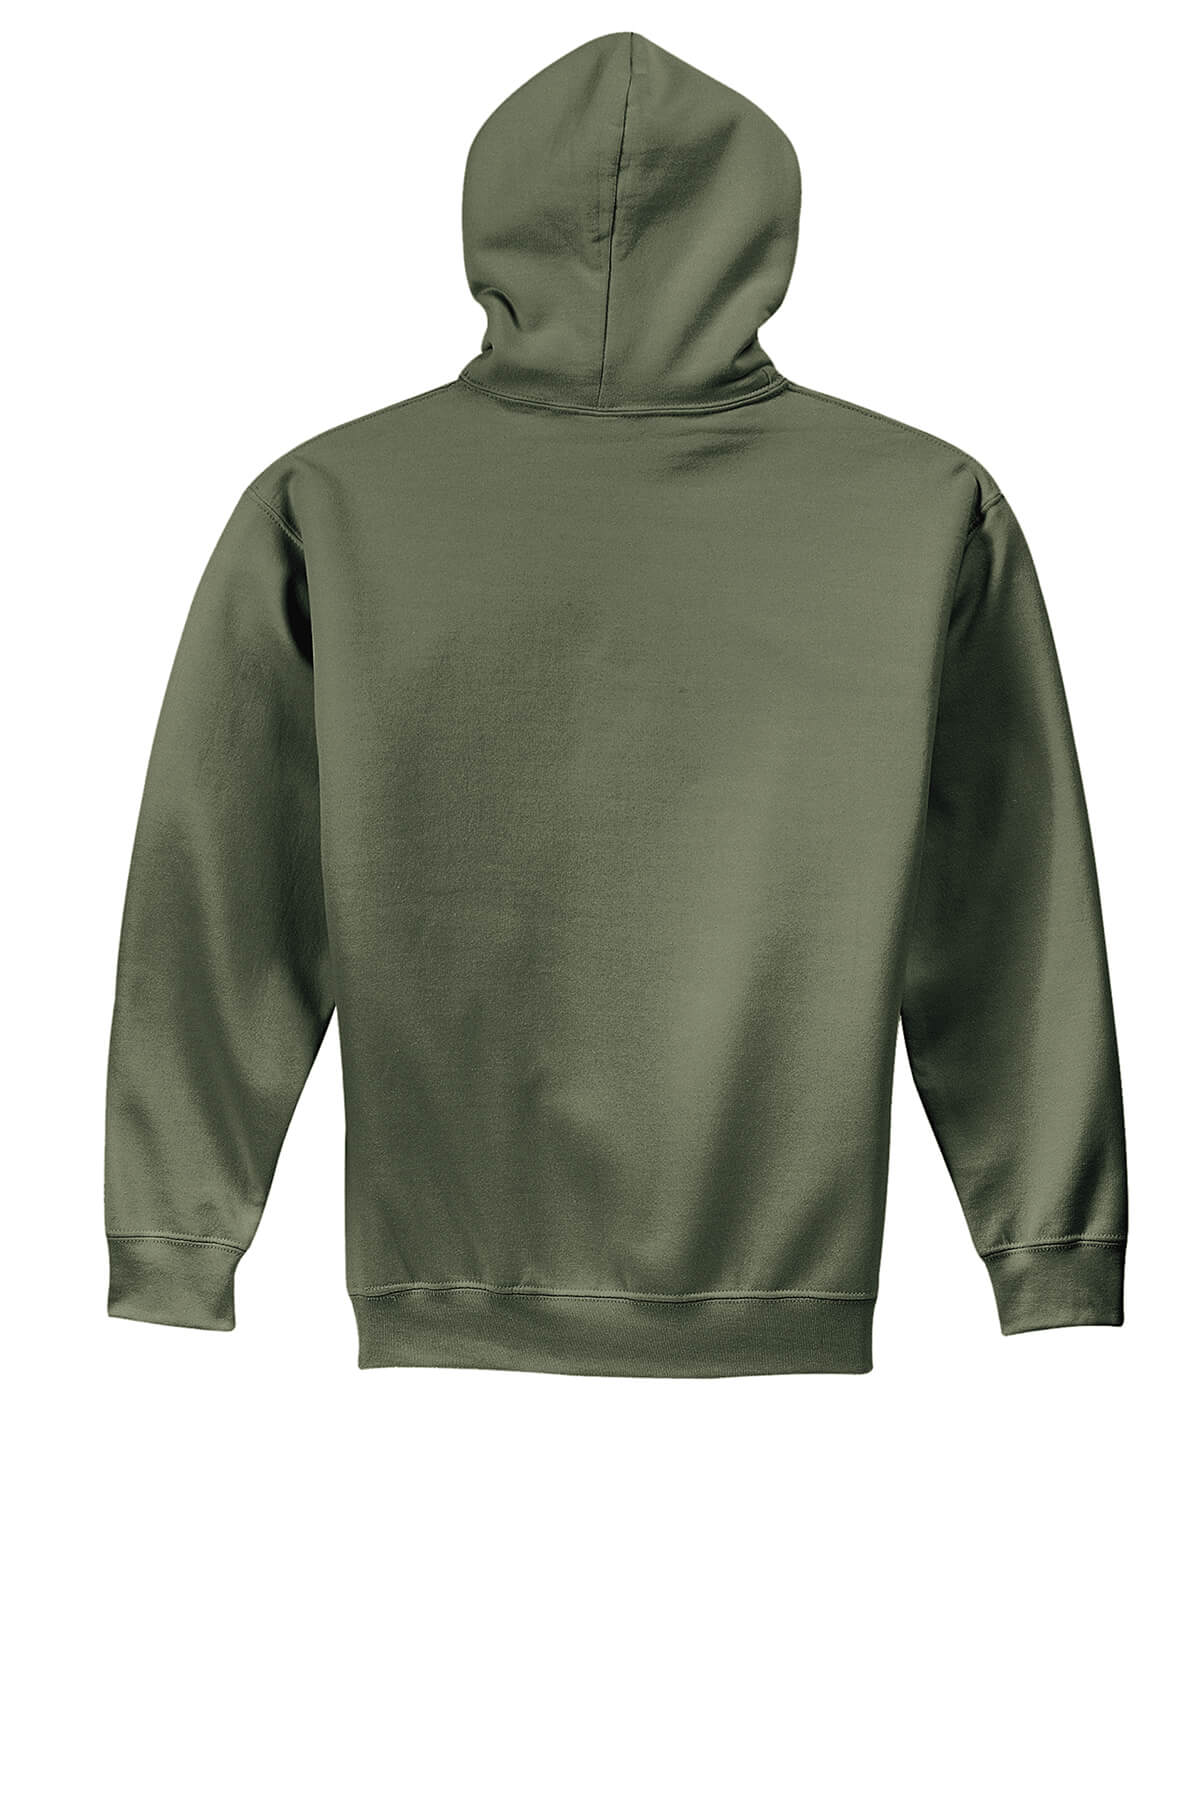 18500-military-green-6